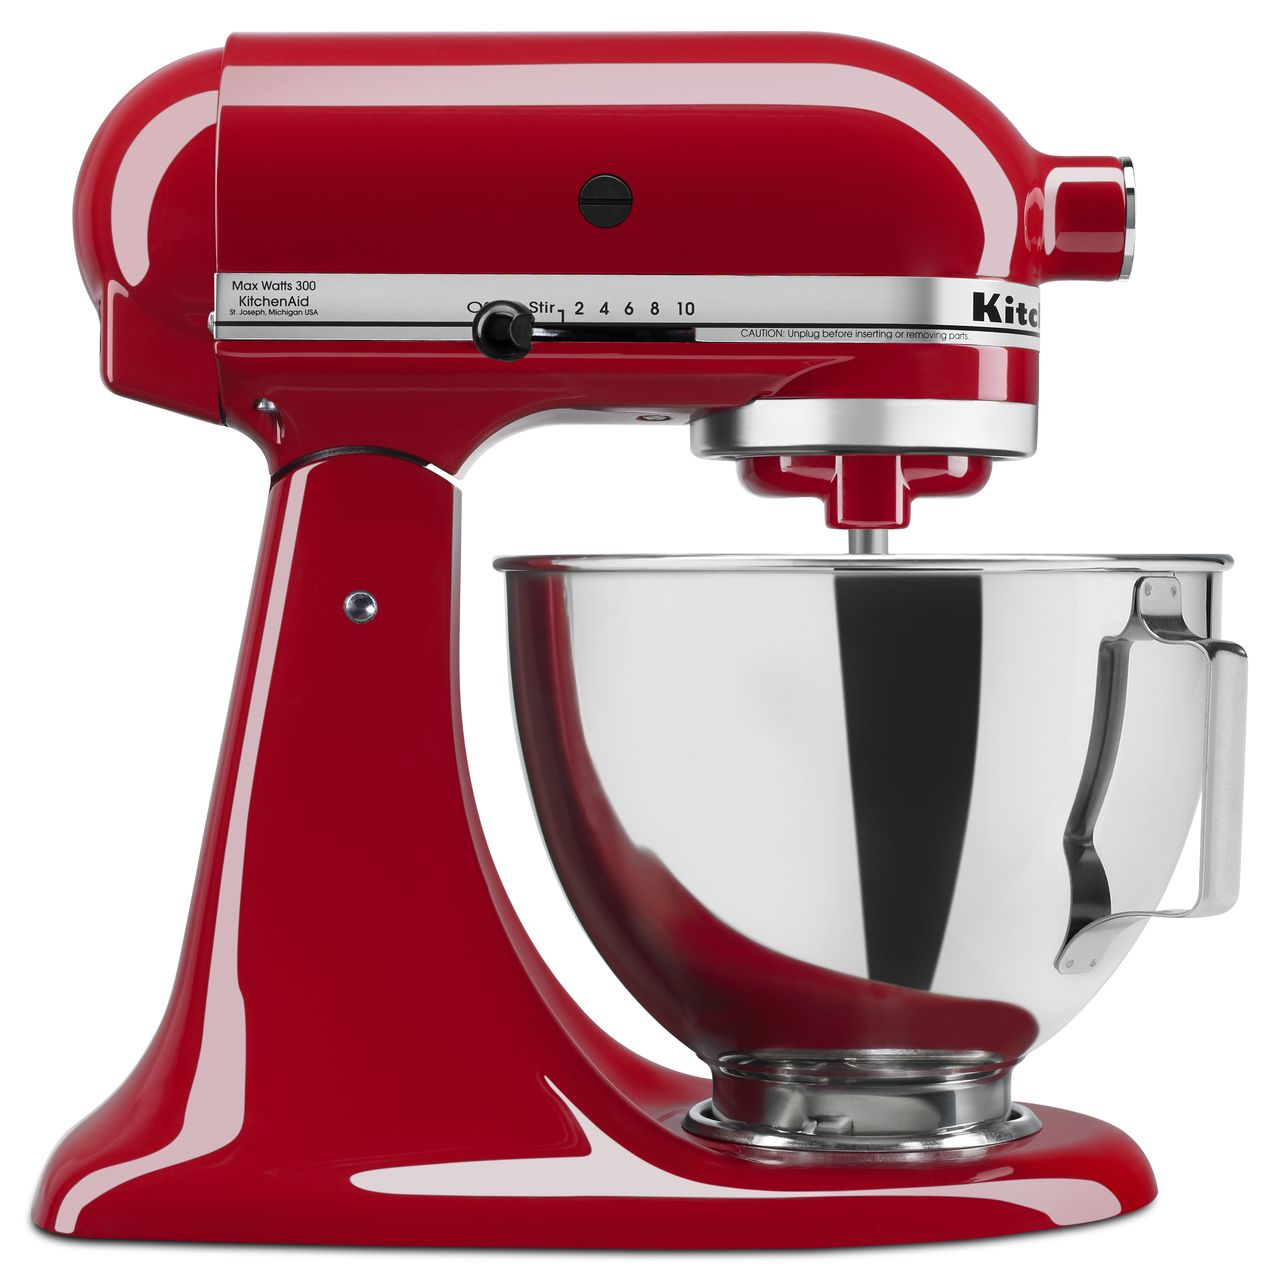 KitchenAid-4-5-quart-Tilt-Head-Stand-Mixer-with-Flex-Edge-Beater-KSM85PSQ thumbnail 7